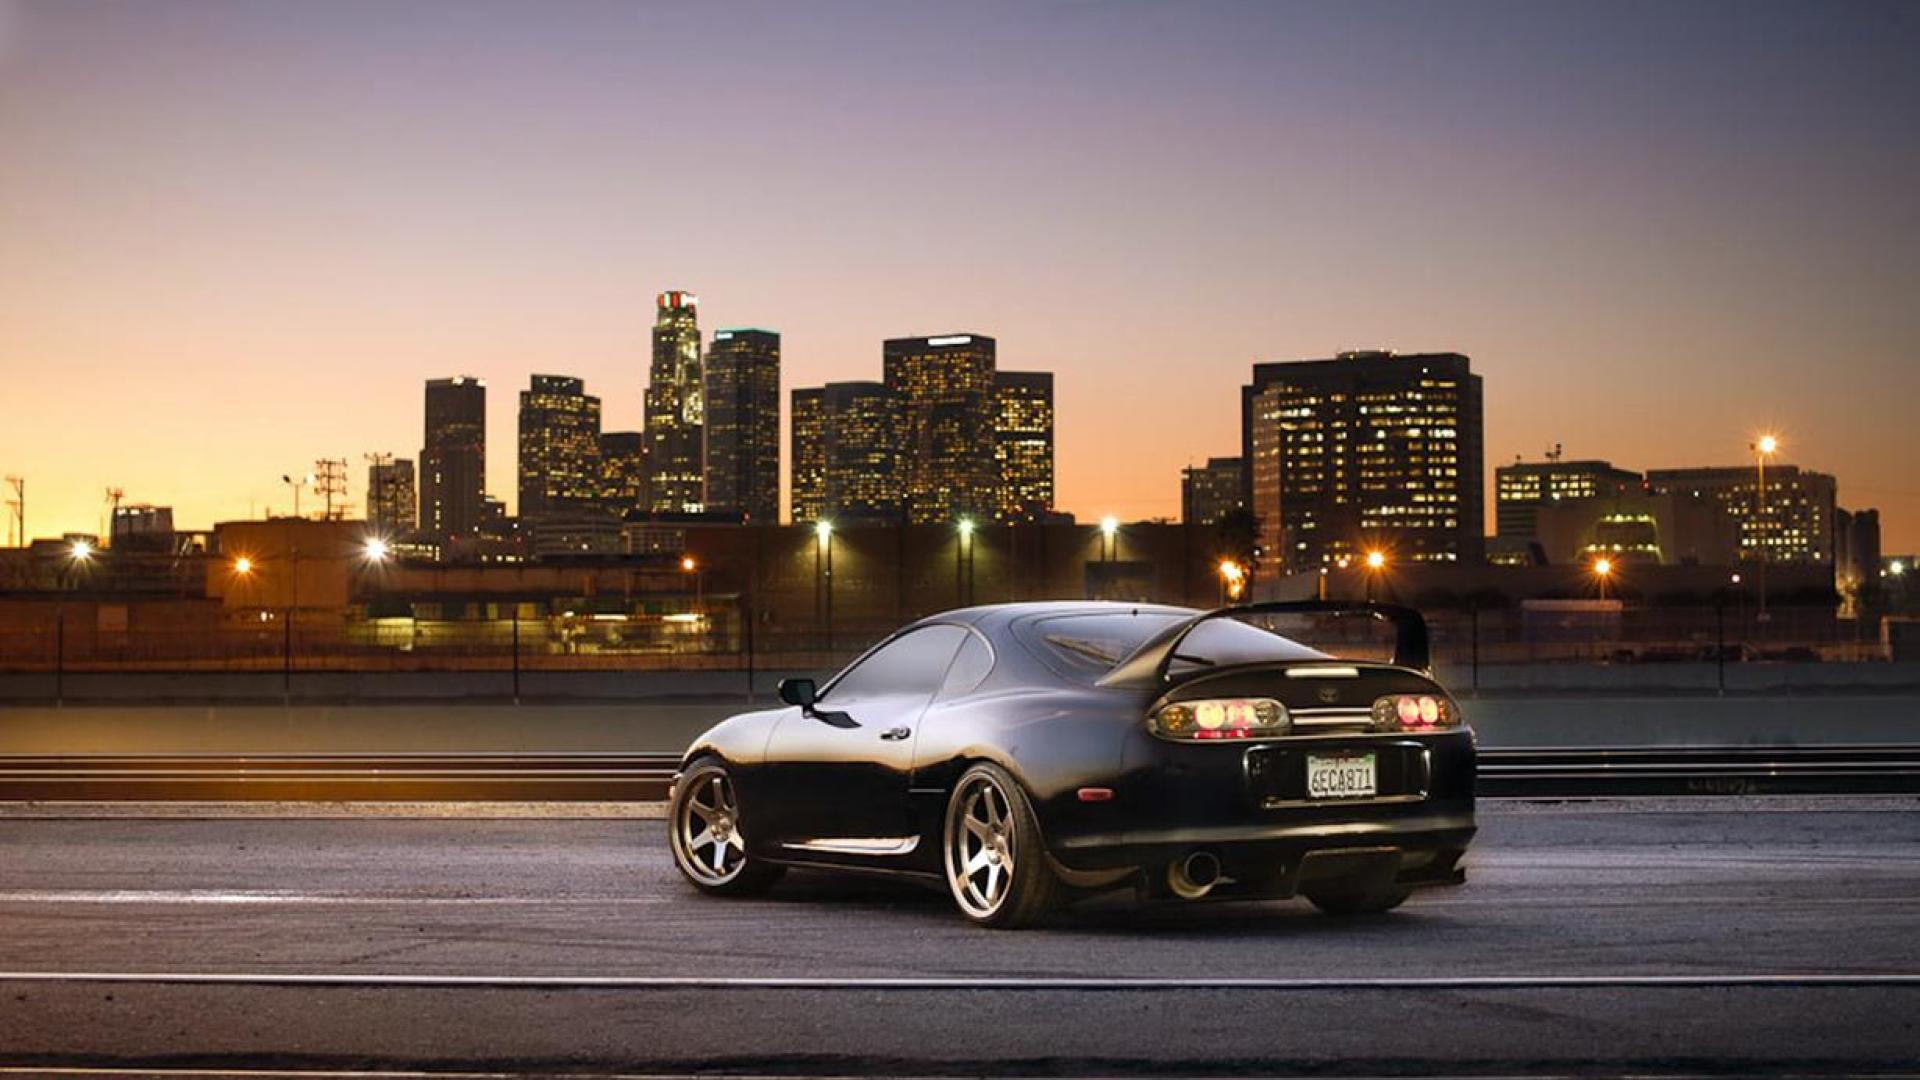 Toyota Supra Wallpapers Hd Wallpaper Cave